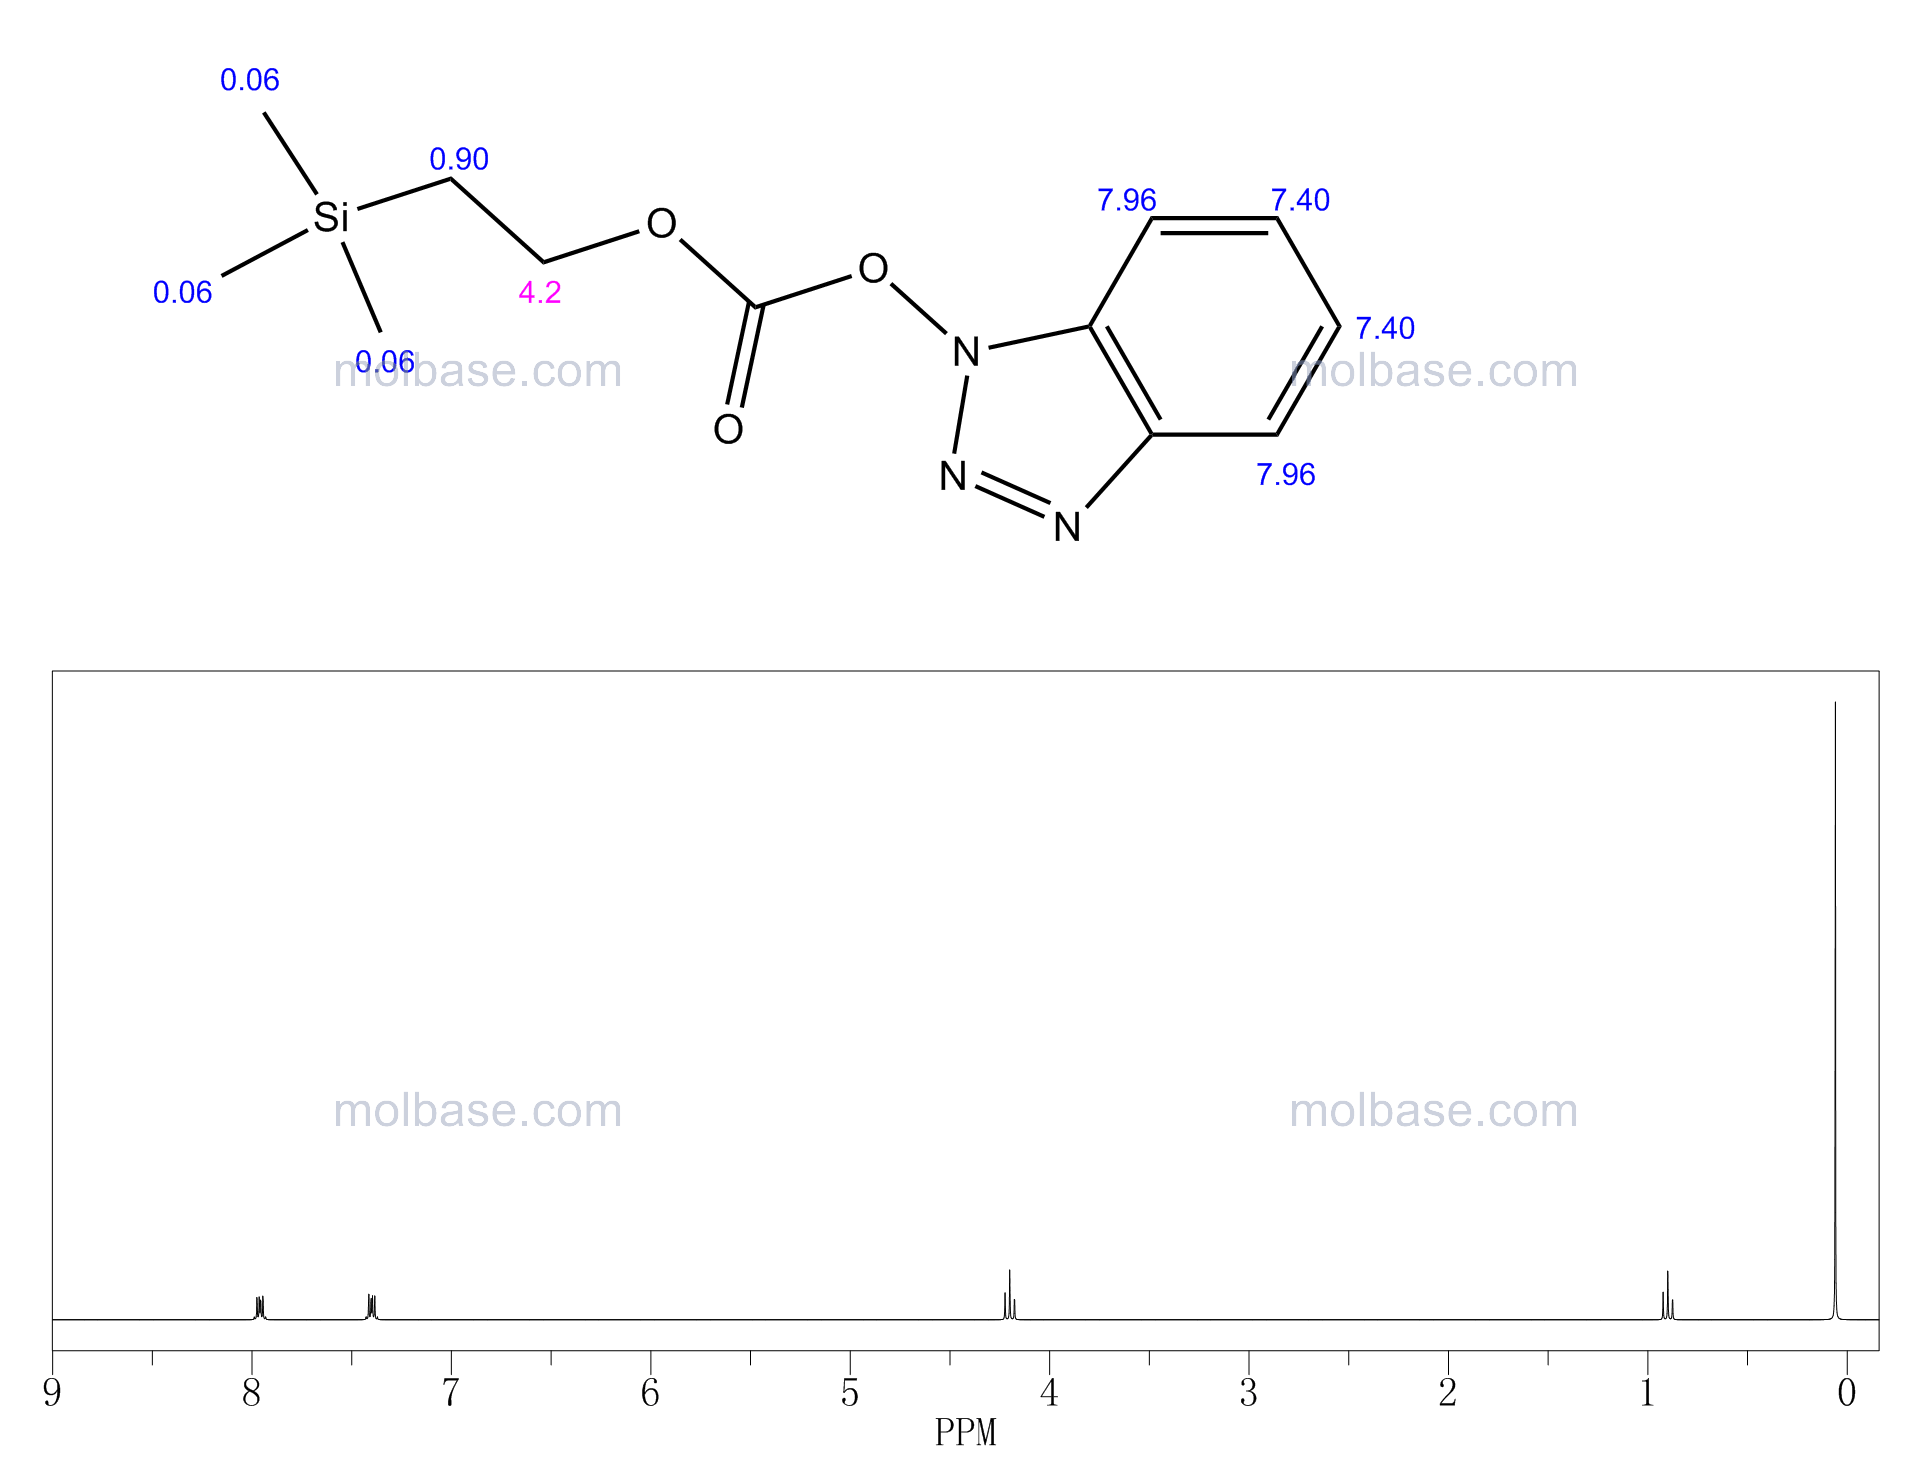 1-[2-(Trimethylsilyl)ethoxycarbonyloxy]benzotriazole NMR spectra analysis, Chemical CAS NO. 113306-55-1 NMR spectral analysis, 1-[2-(Trimethylsilyl)ethoxycarbonyloxy]benzotriazole C-NMR spectrum